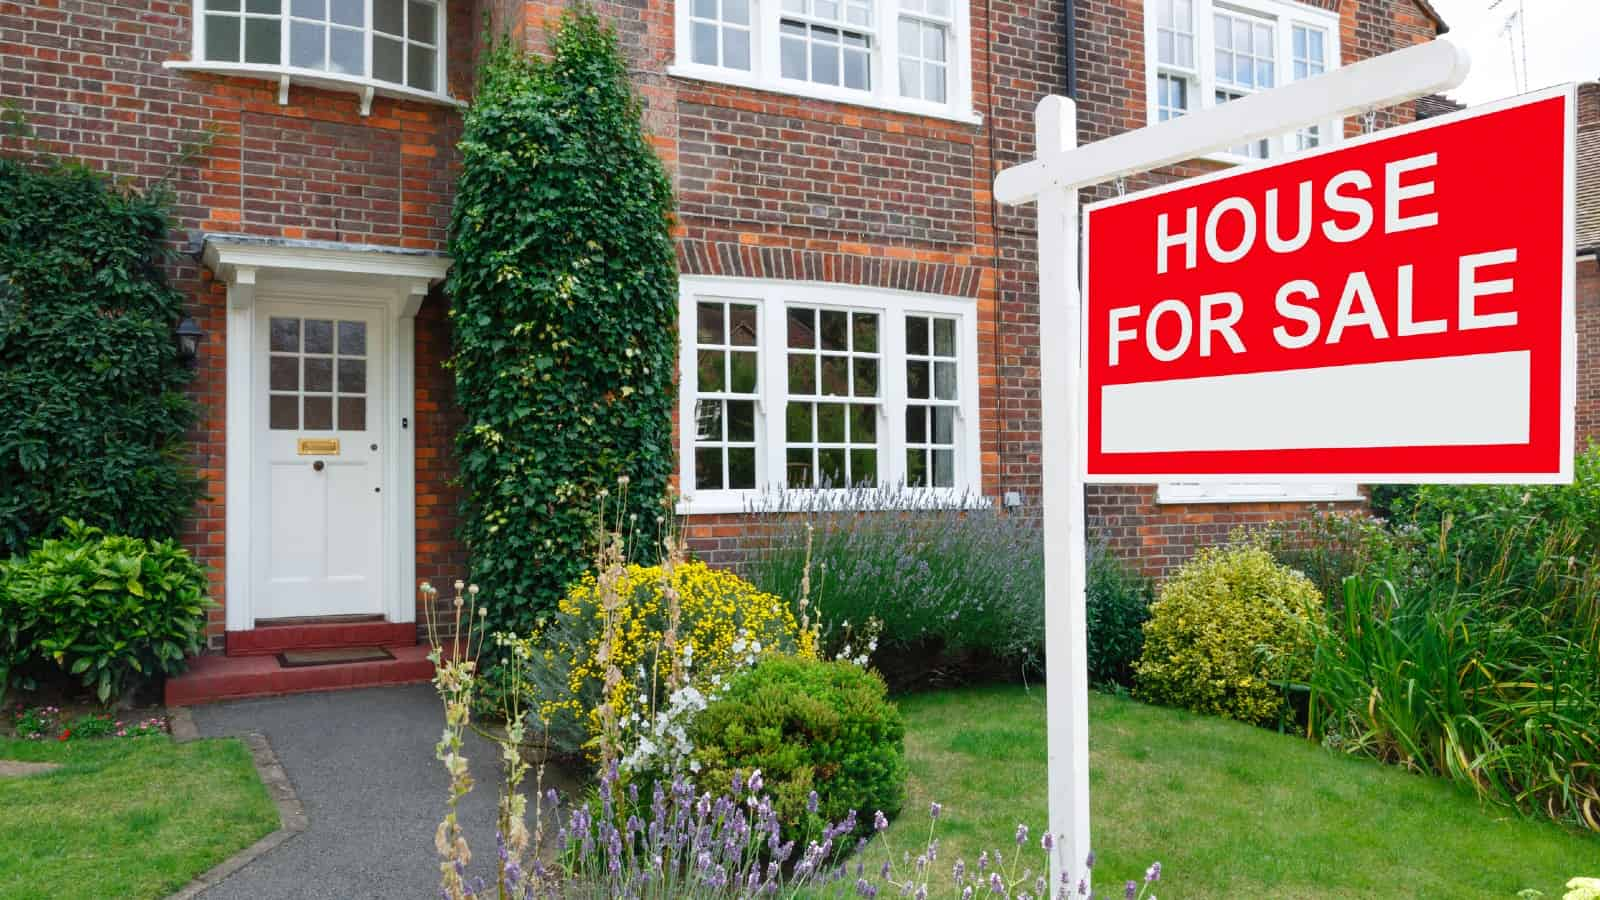 For sale sign outside a home in an affluent suburb of London